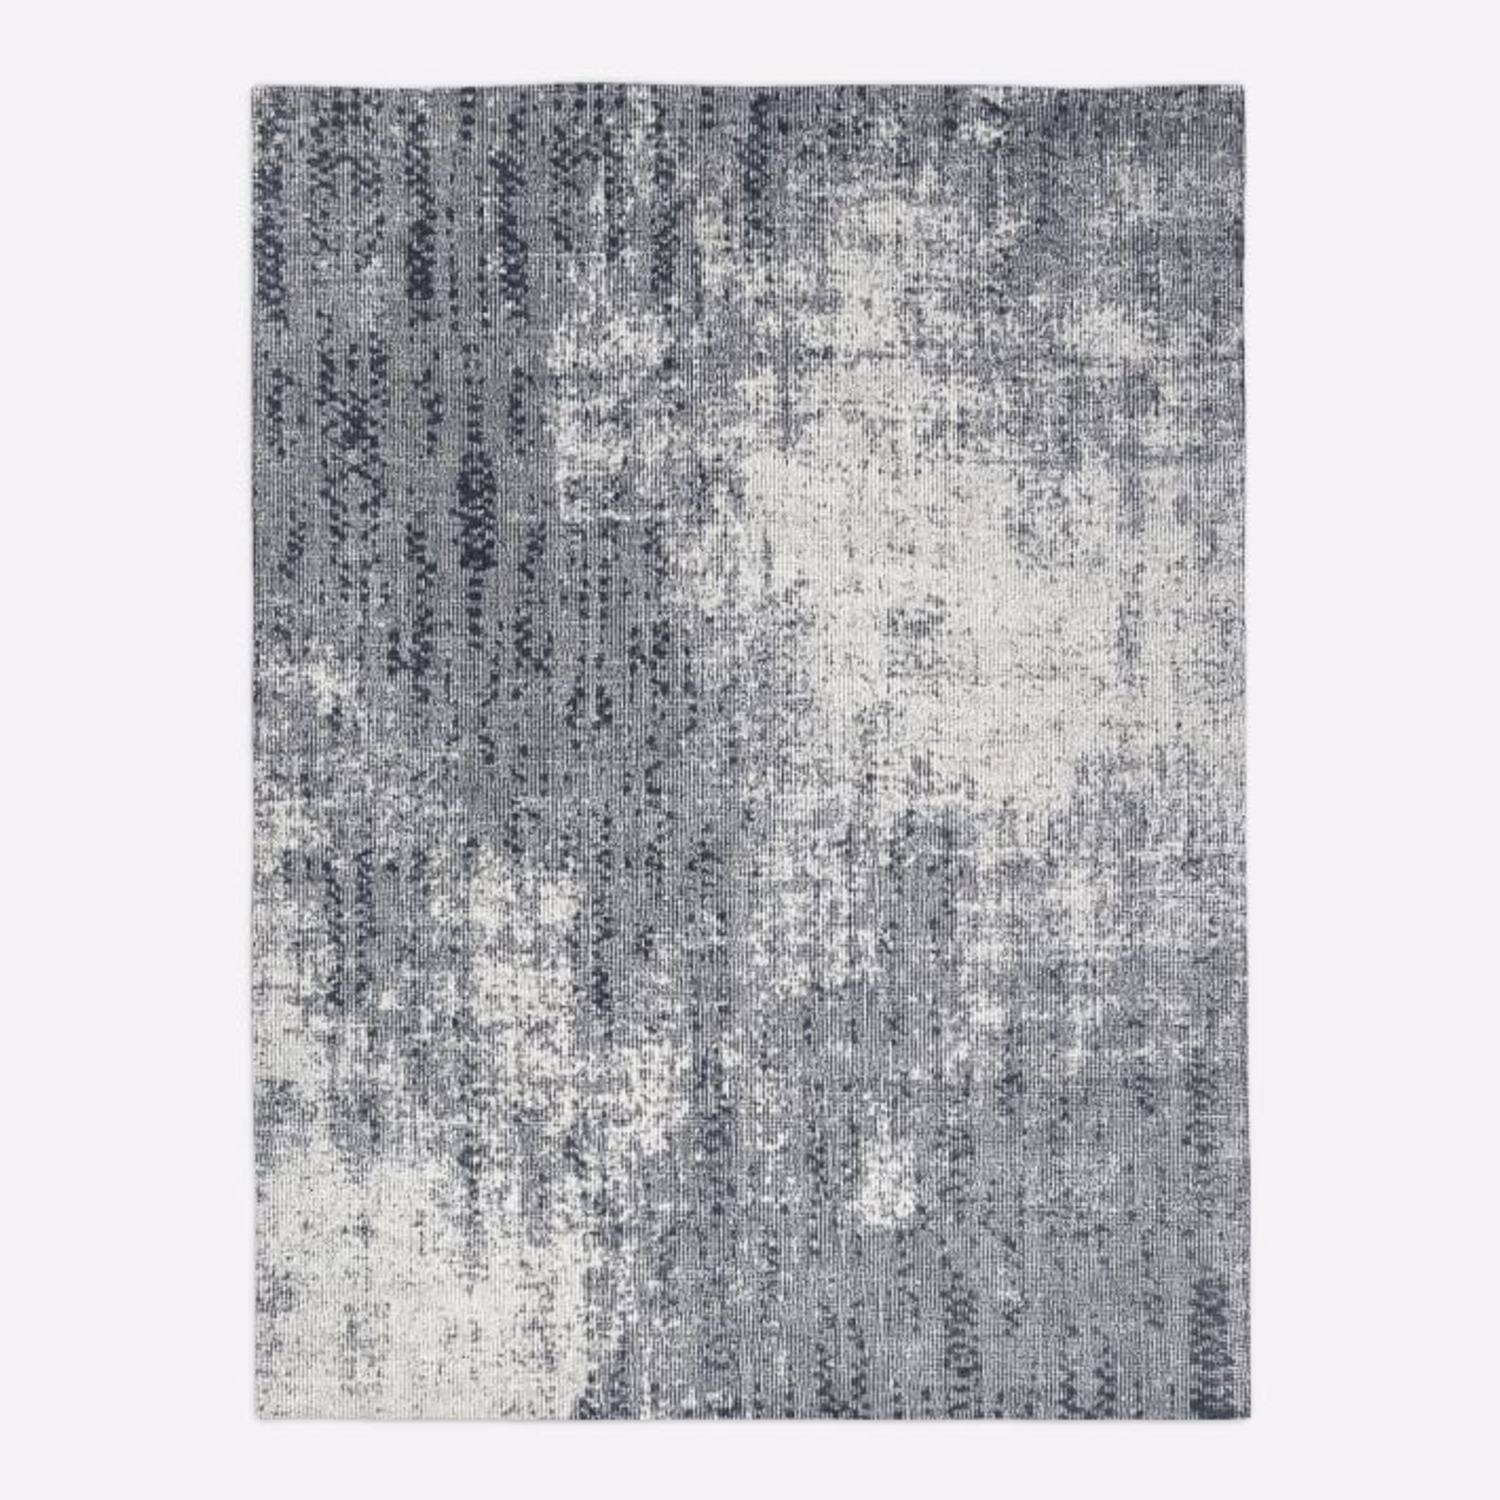 West Elm Distressed Foliage Rug, Pewter - image-3